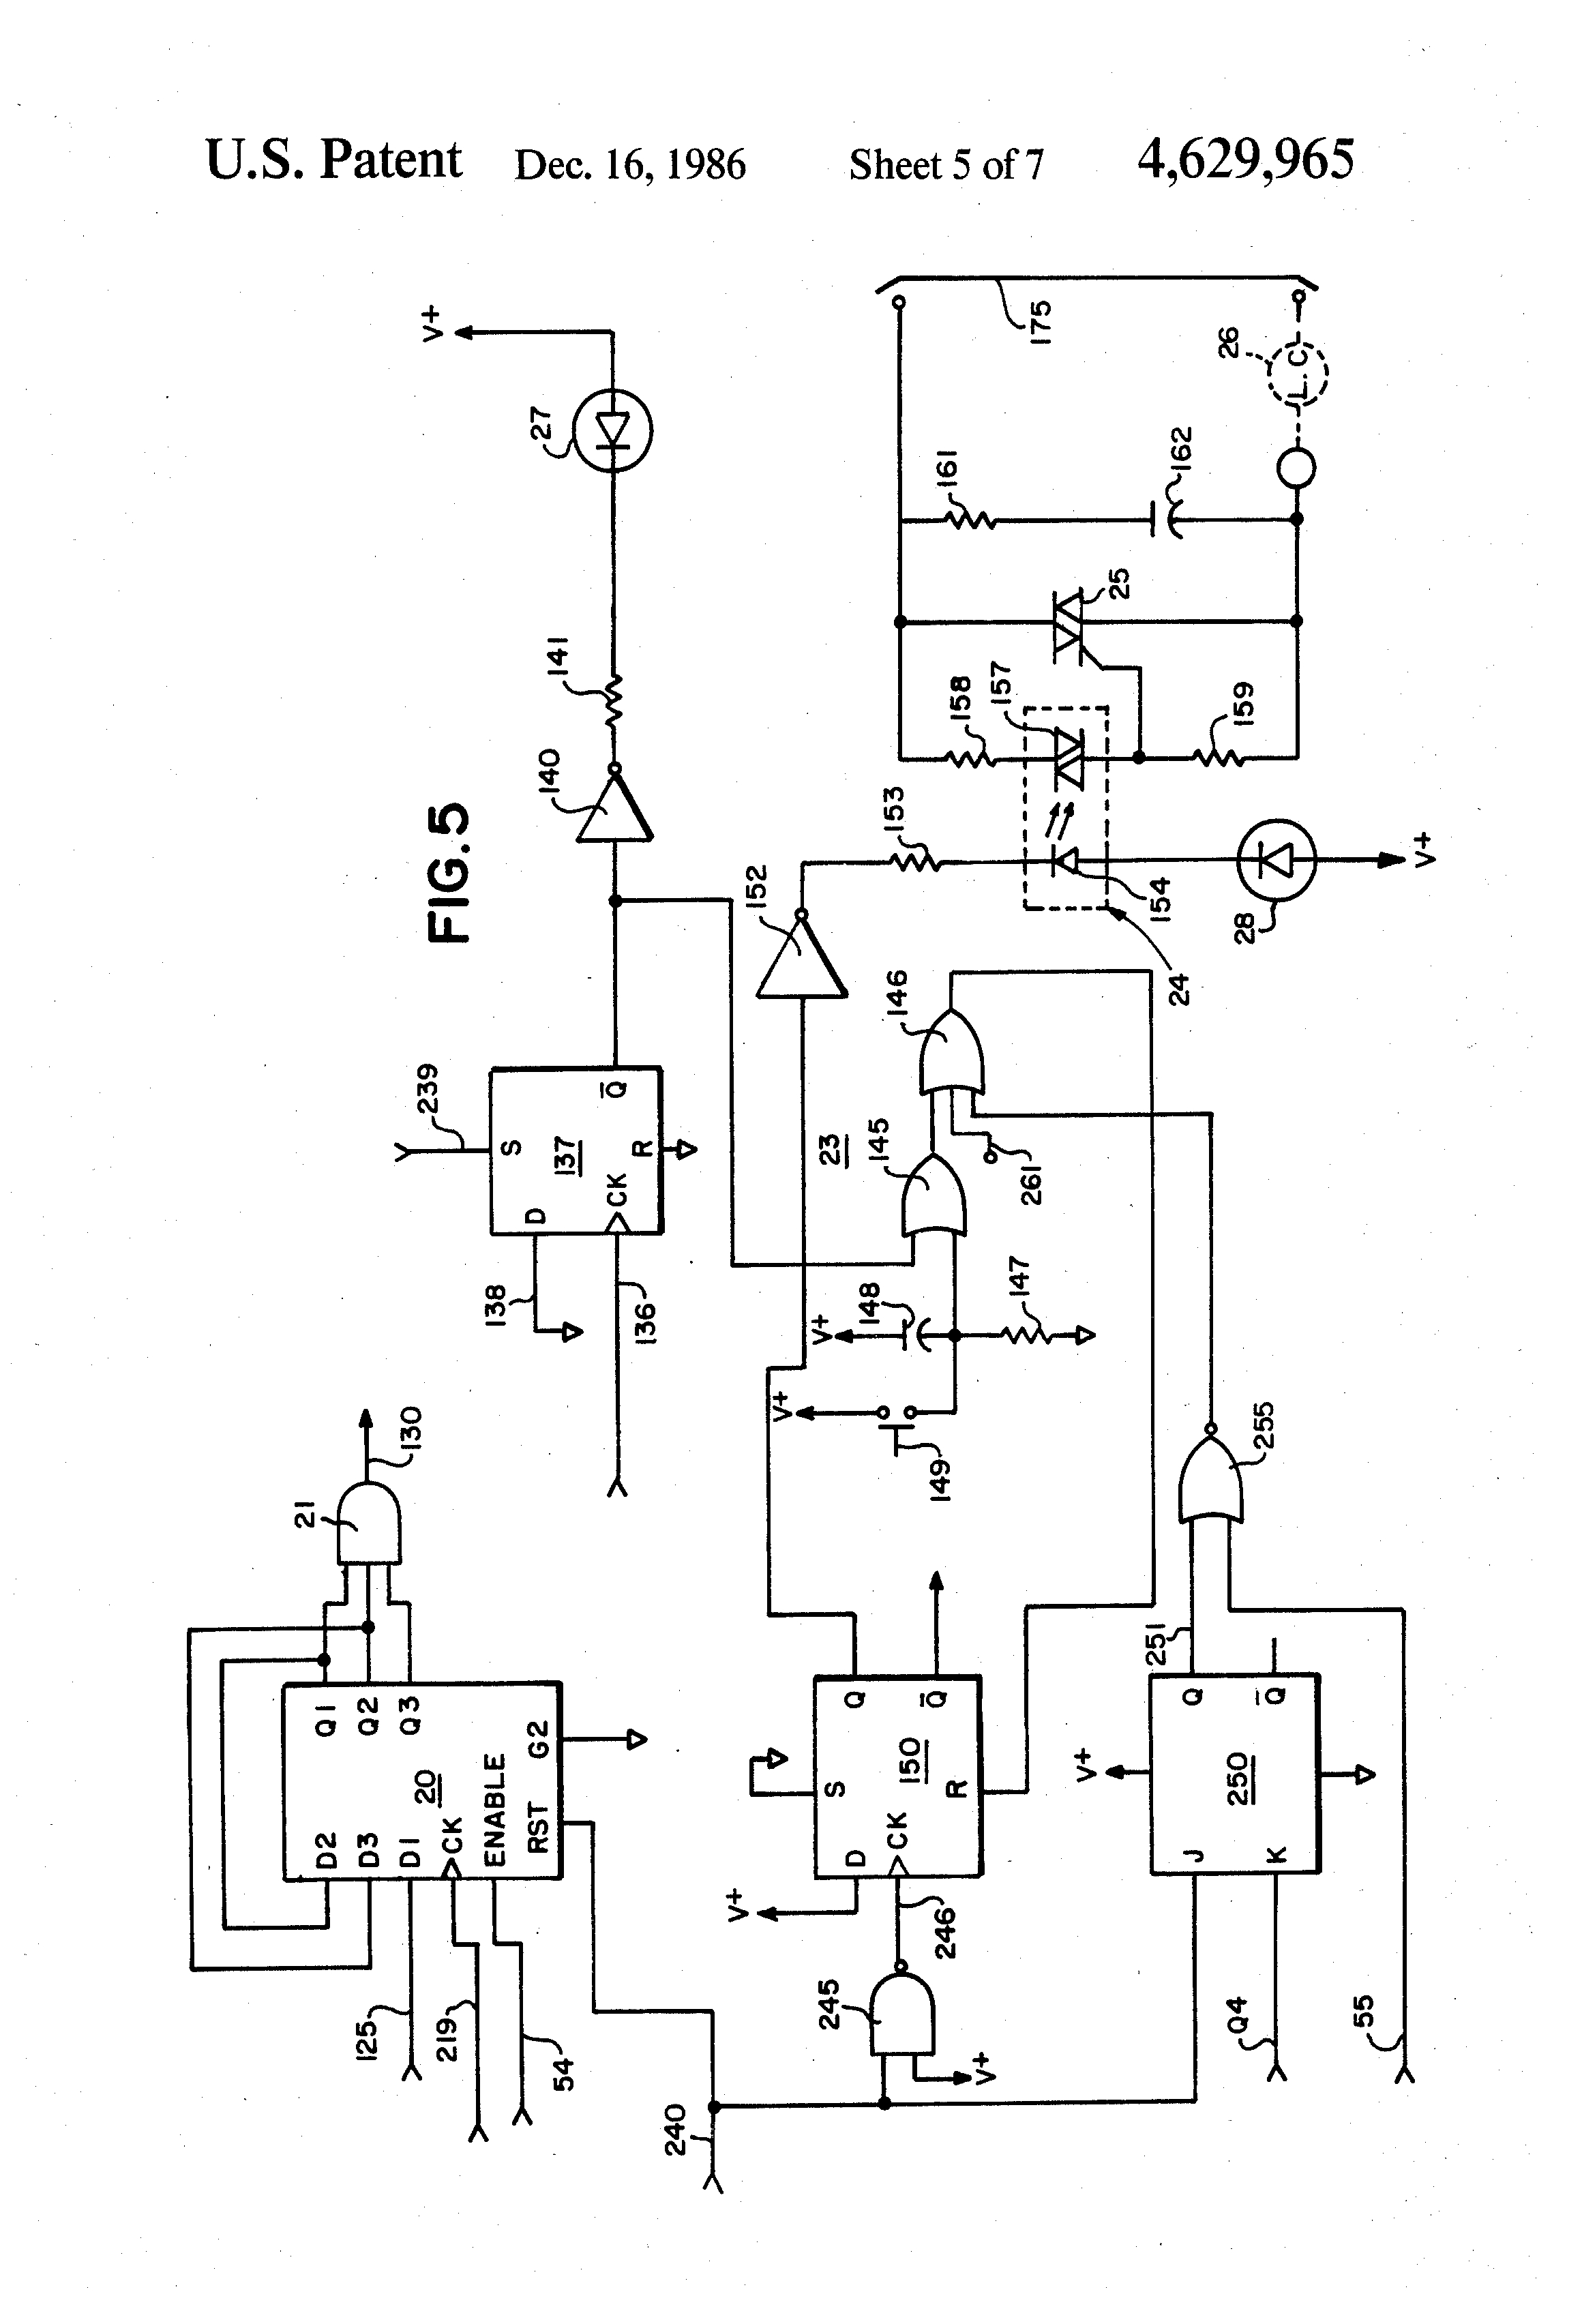 Cxc 7100 Battery Charger Wiring Diagram   Best Wiring Library - Century Battery Charger Wiring Diagram